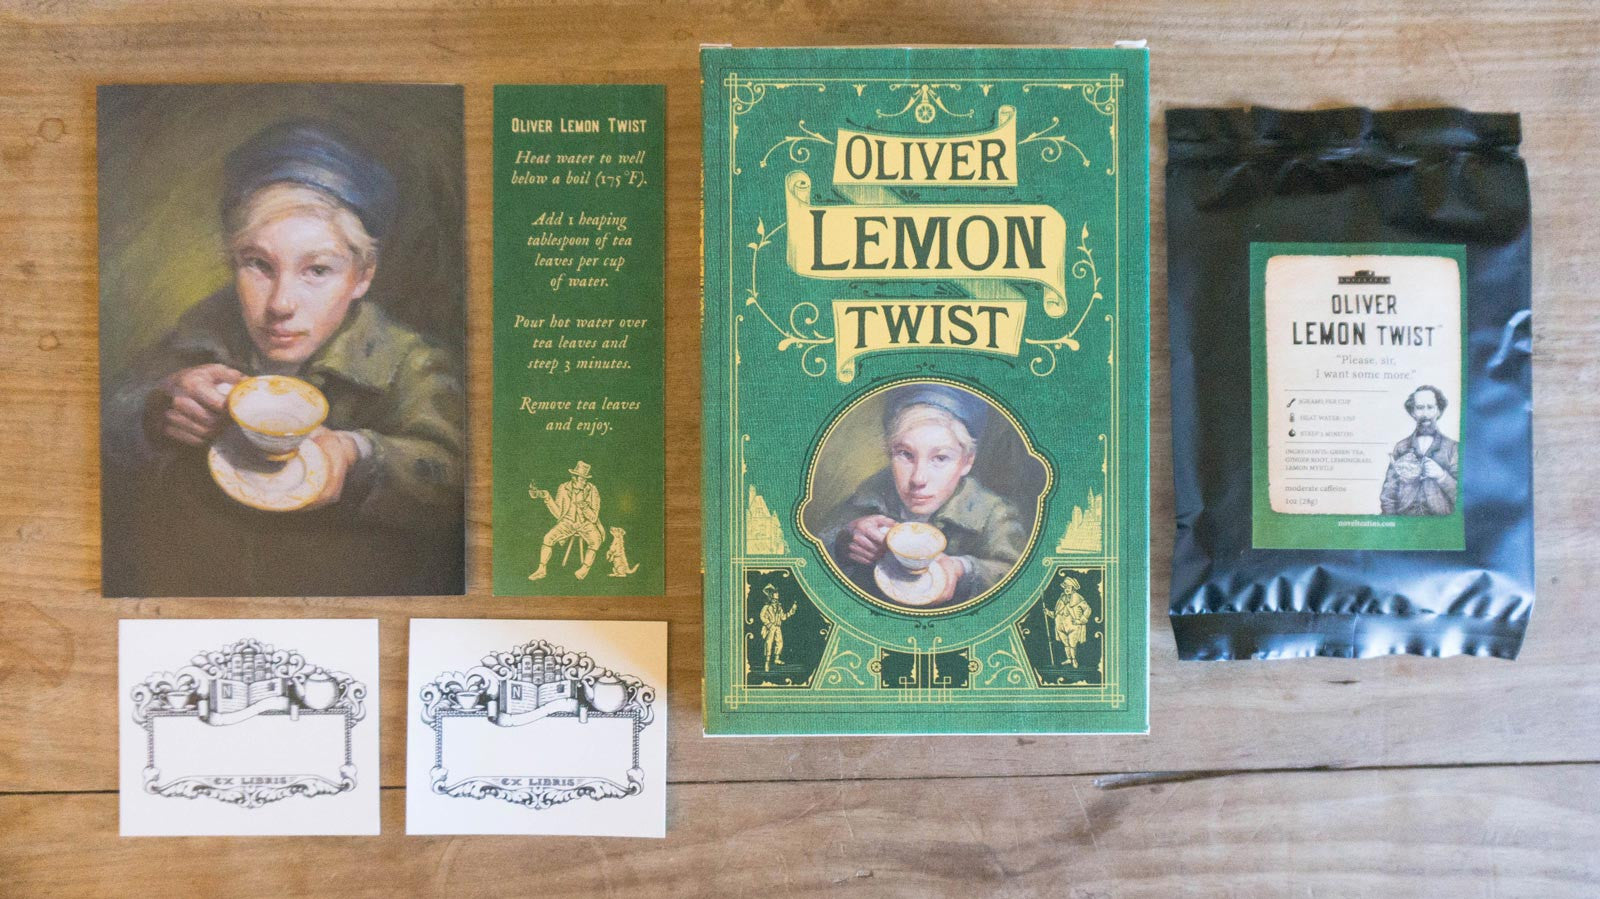 Oliver Lemon Twist carton